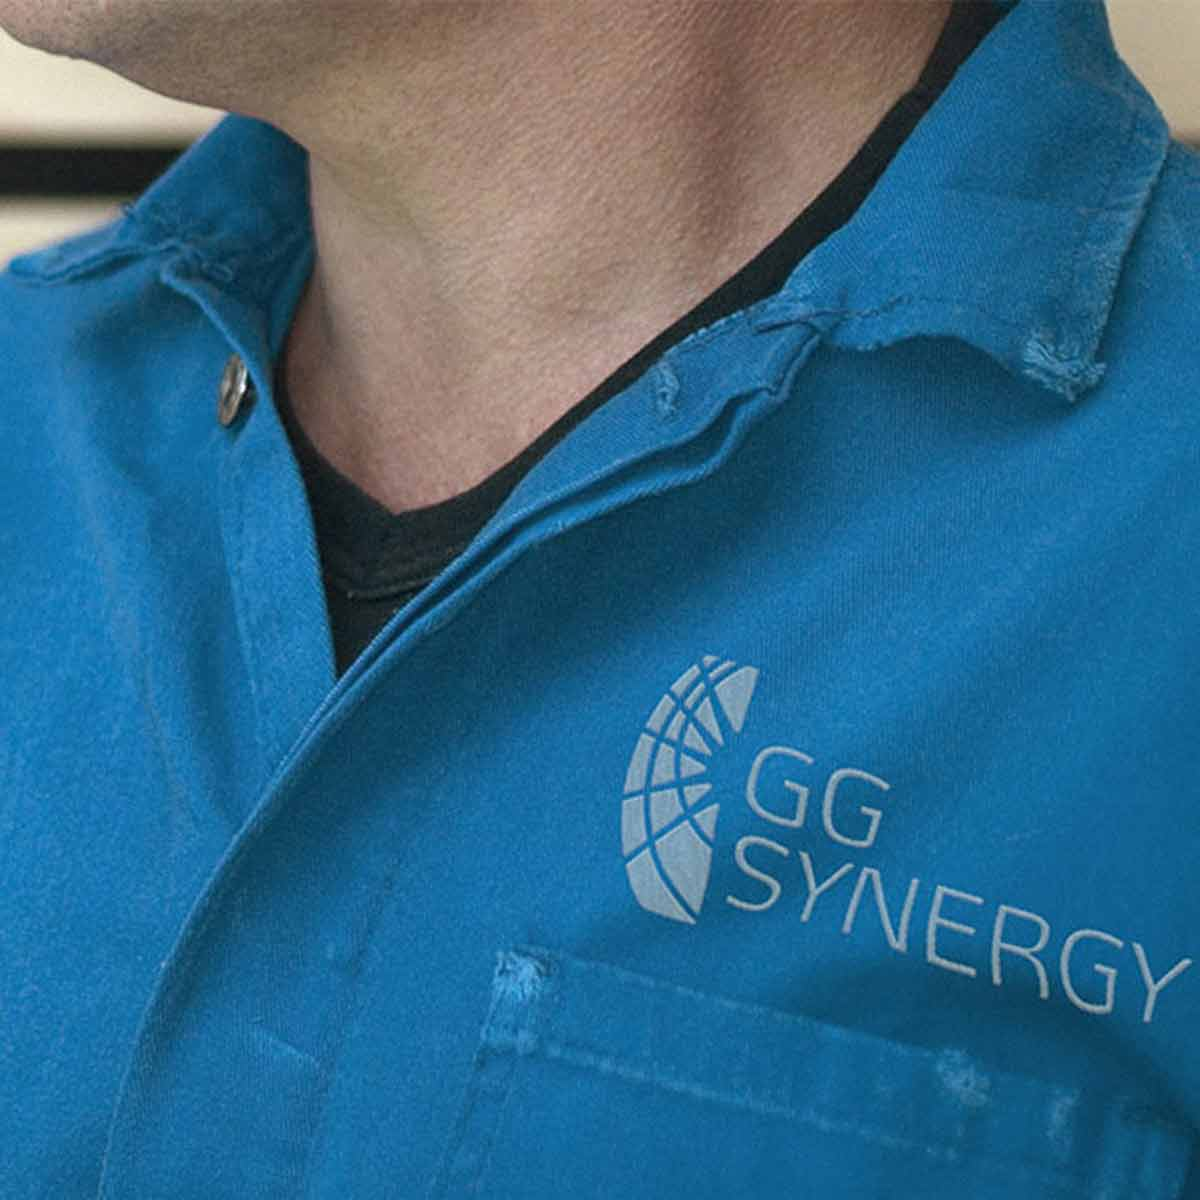 GG Synergy shirt detail